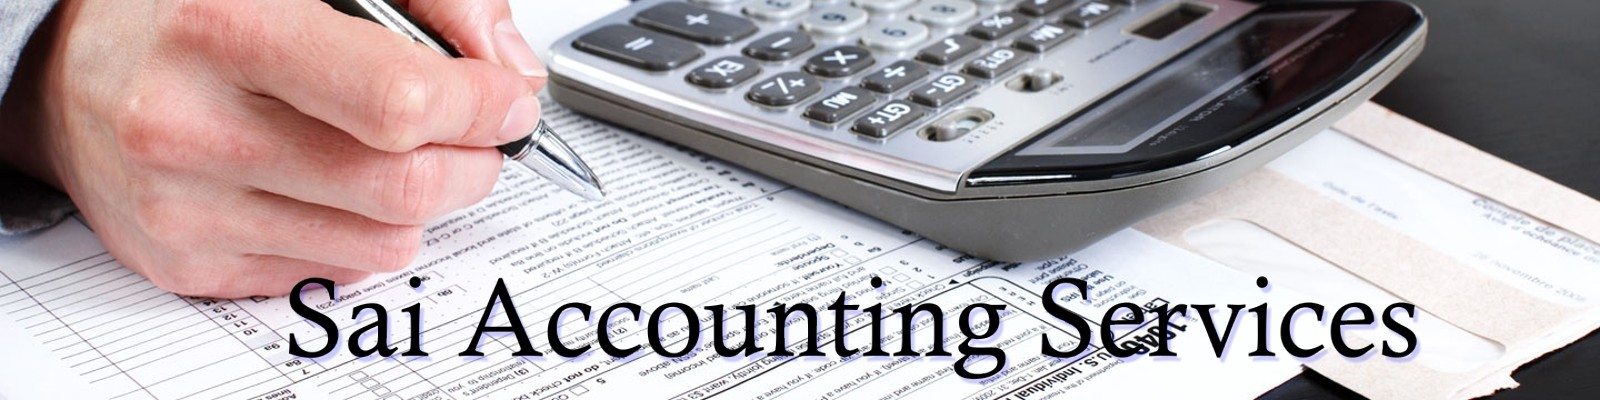 Sai Accounting Services